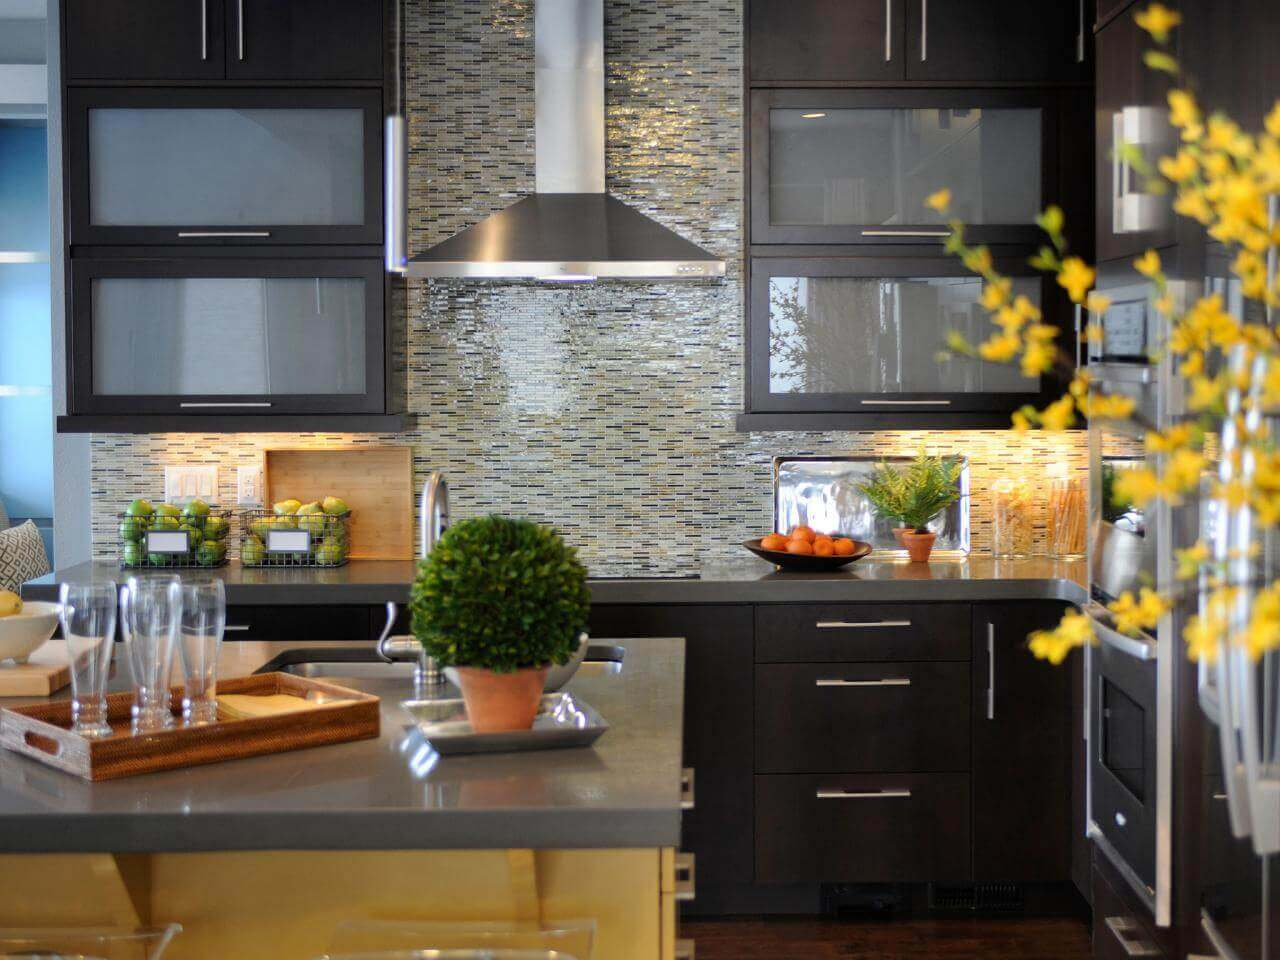 Exquisite mosaic modern kitchen tiles backsplash meld with stainless steel countertops while the dark brown wood cabinets and light brown island base add just the right amount of wood grain to accent the backdrop